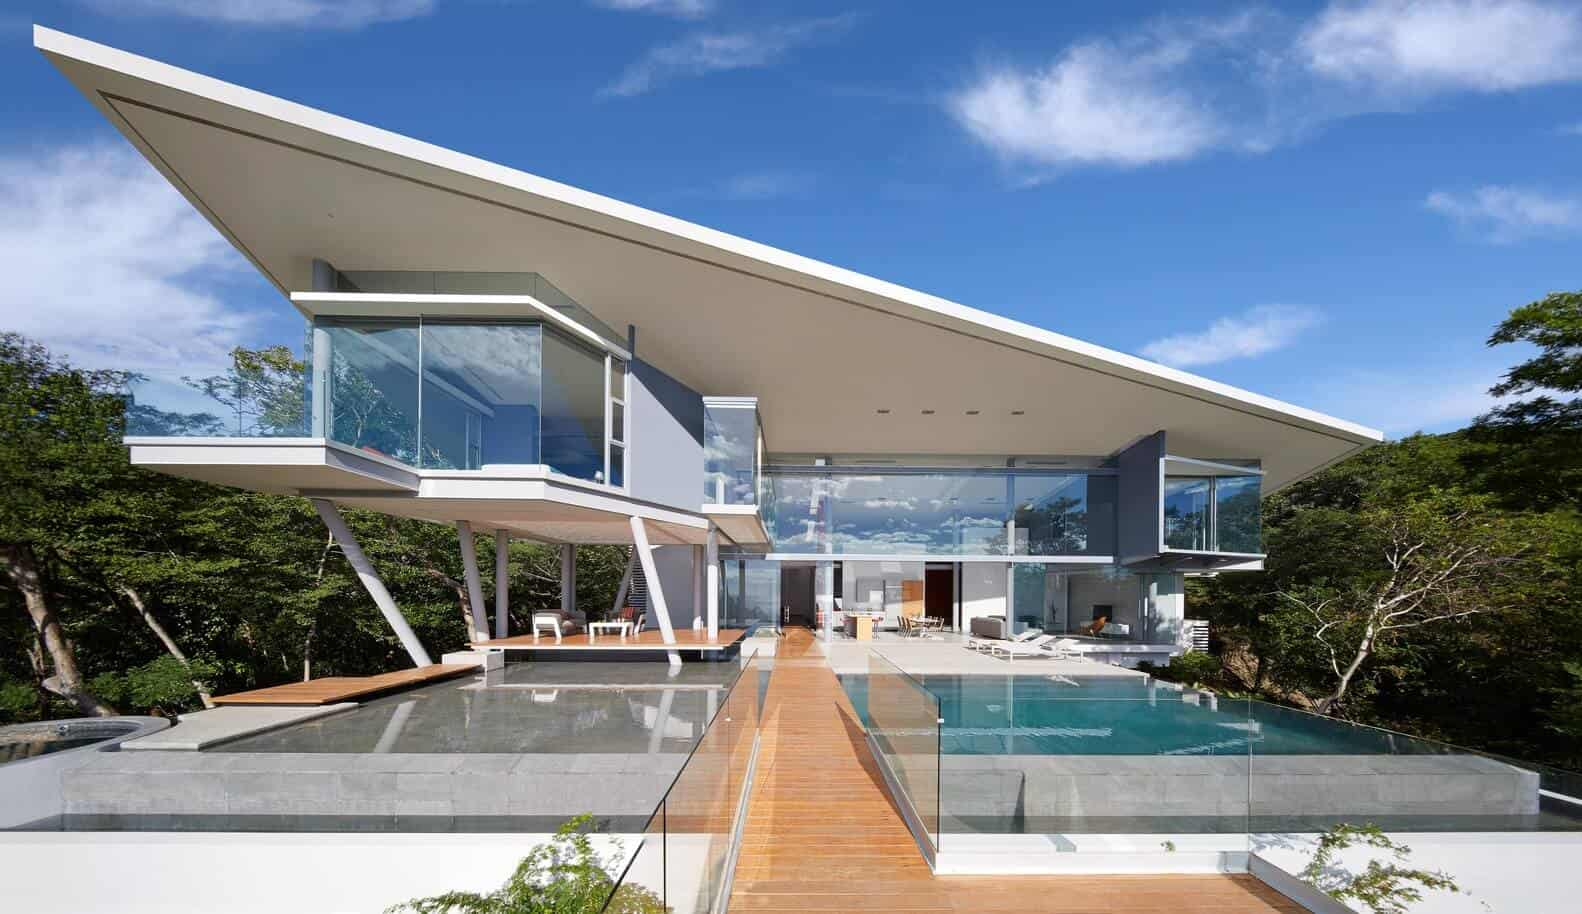 modern home design with a slant roof and glass walls